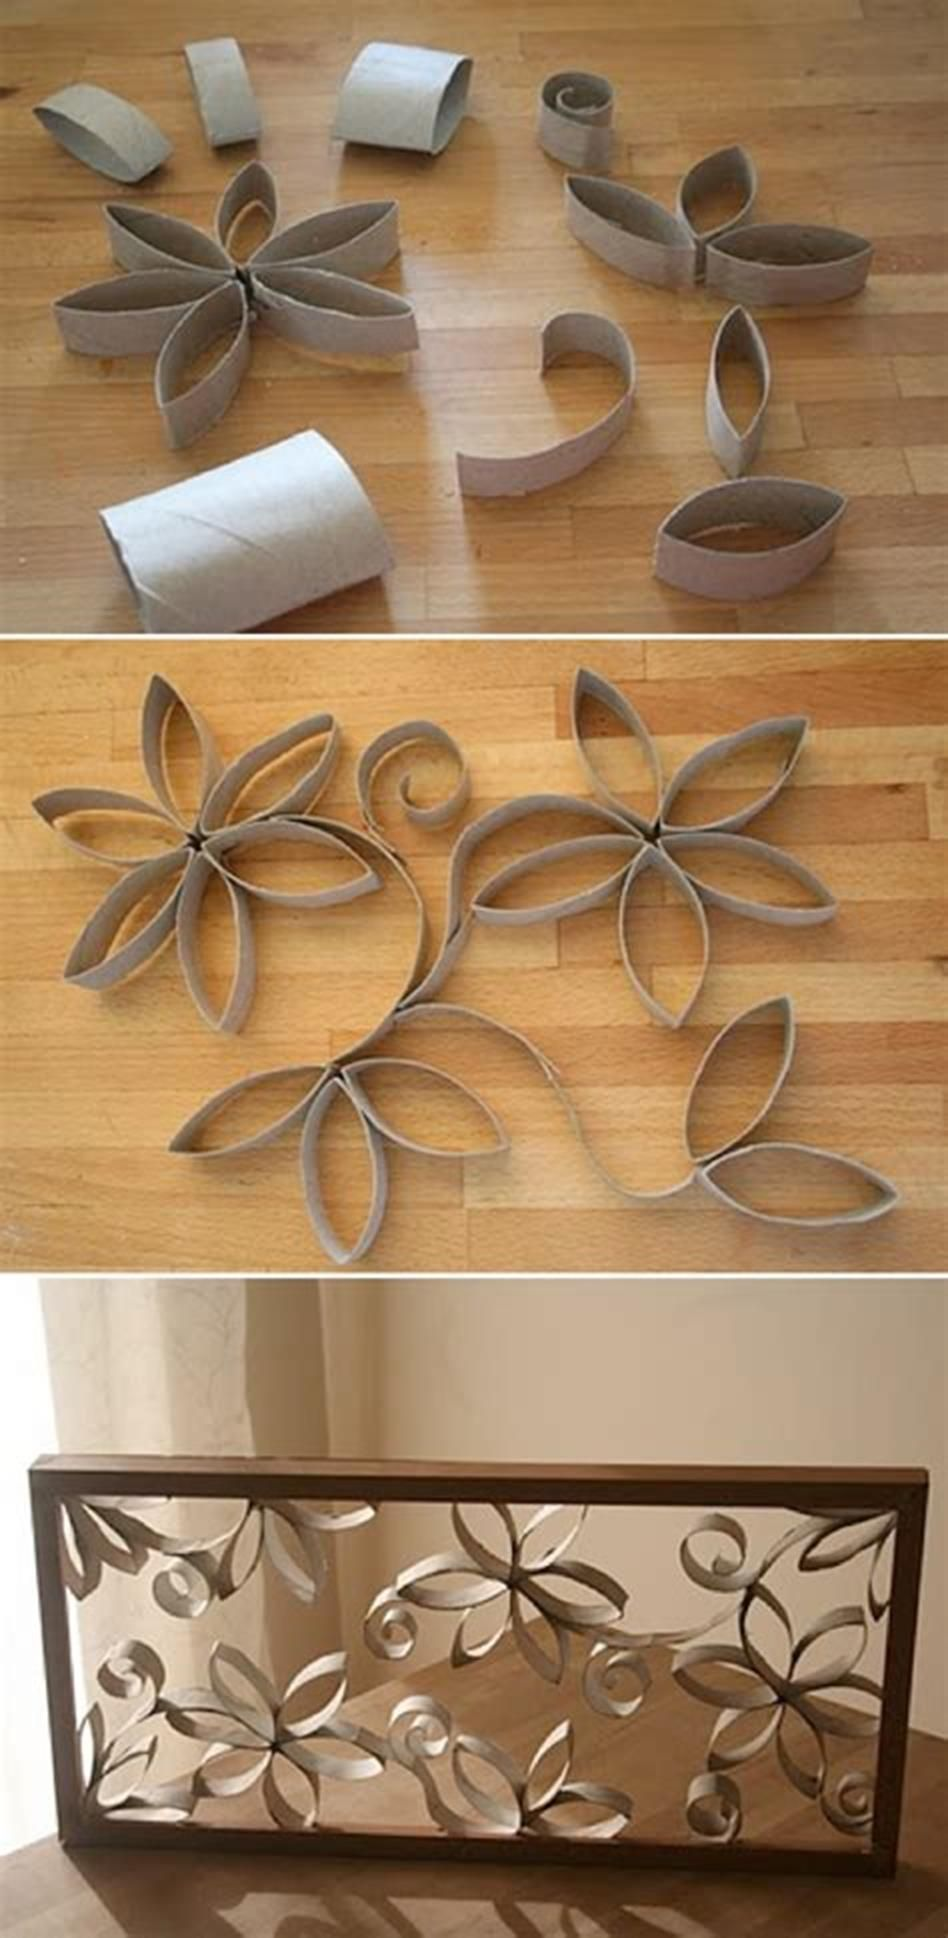 30 diy easy to make craft ideas with toilet paper rolls